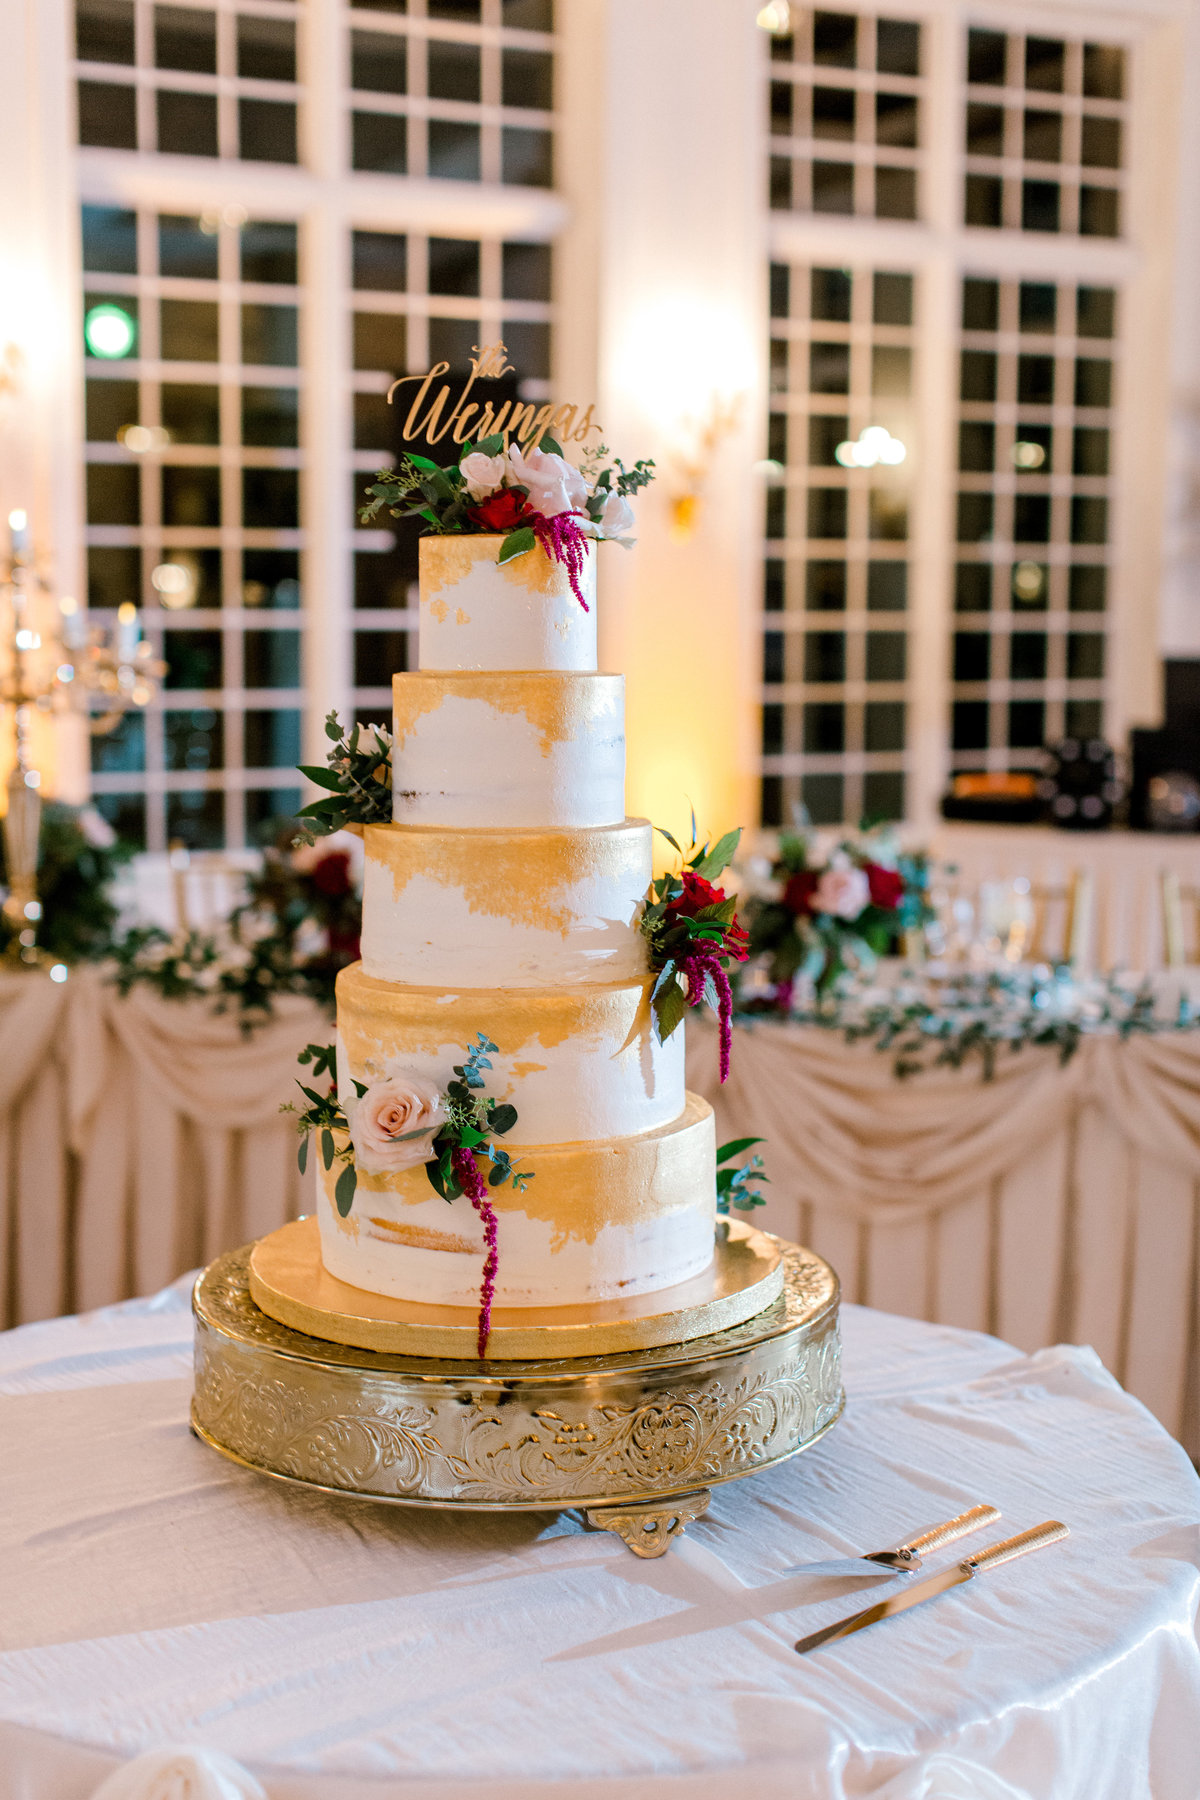 wedding cake at the haley mansion in joliet illinois